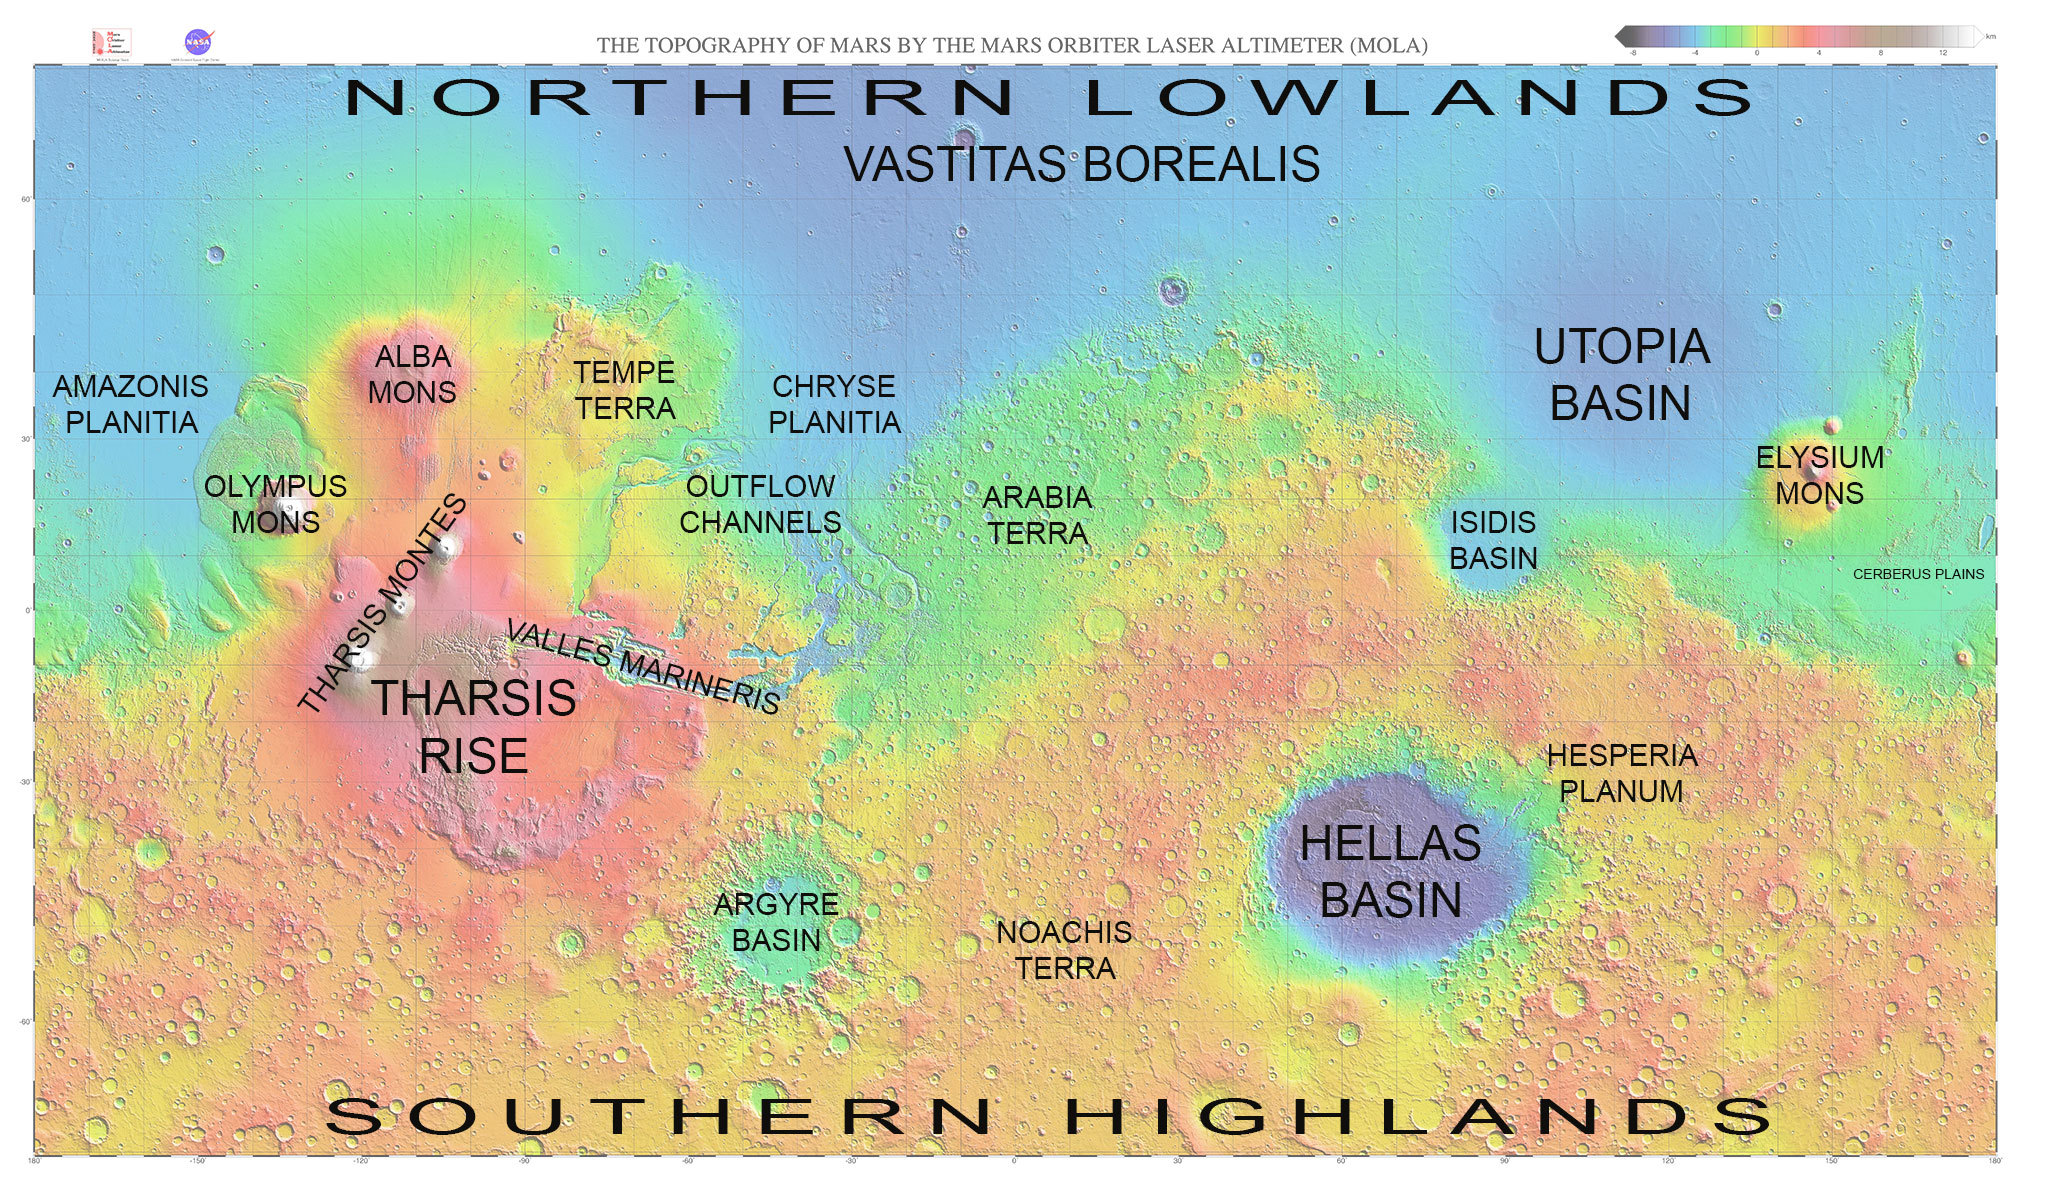 Map of Mars with major regions labeled The Planetary Society